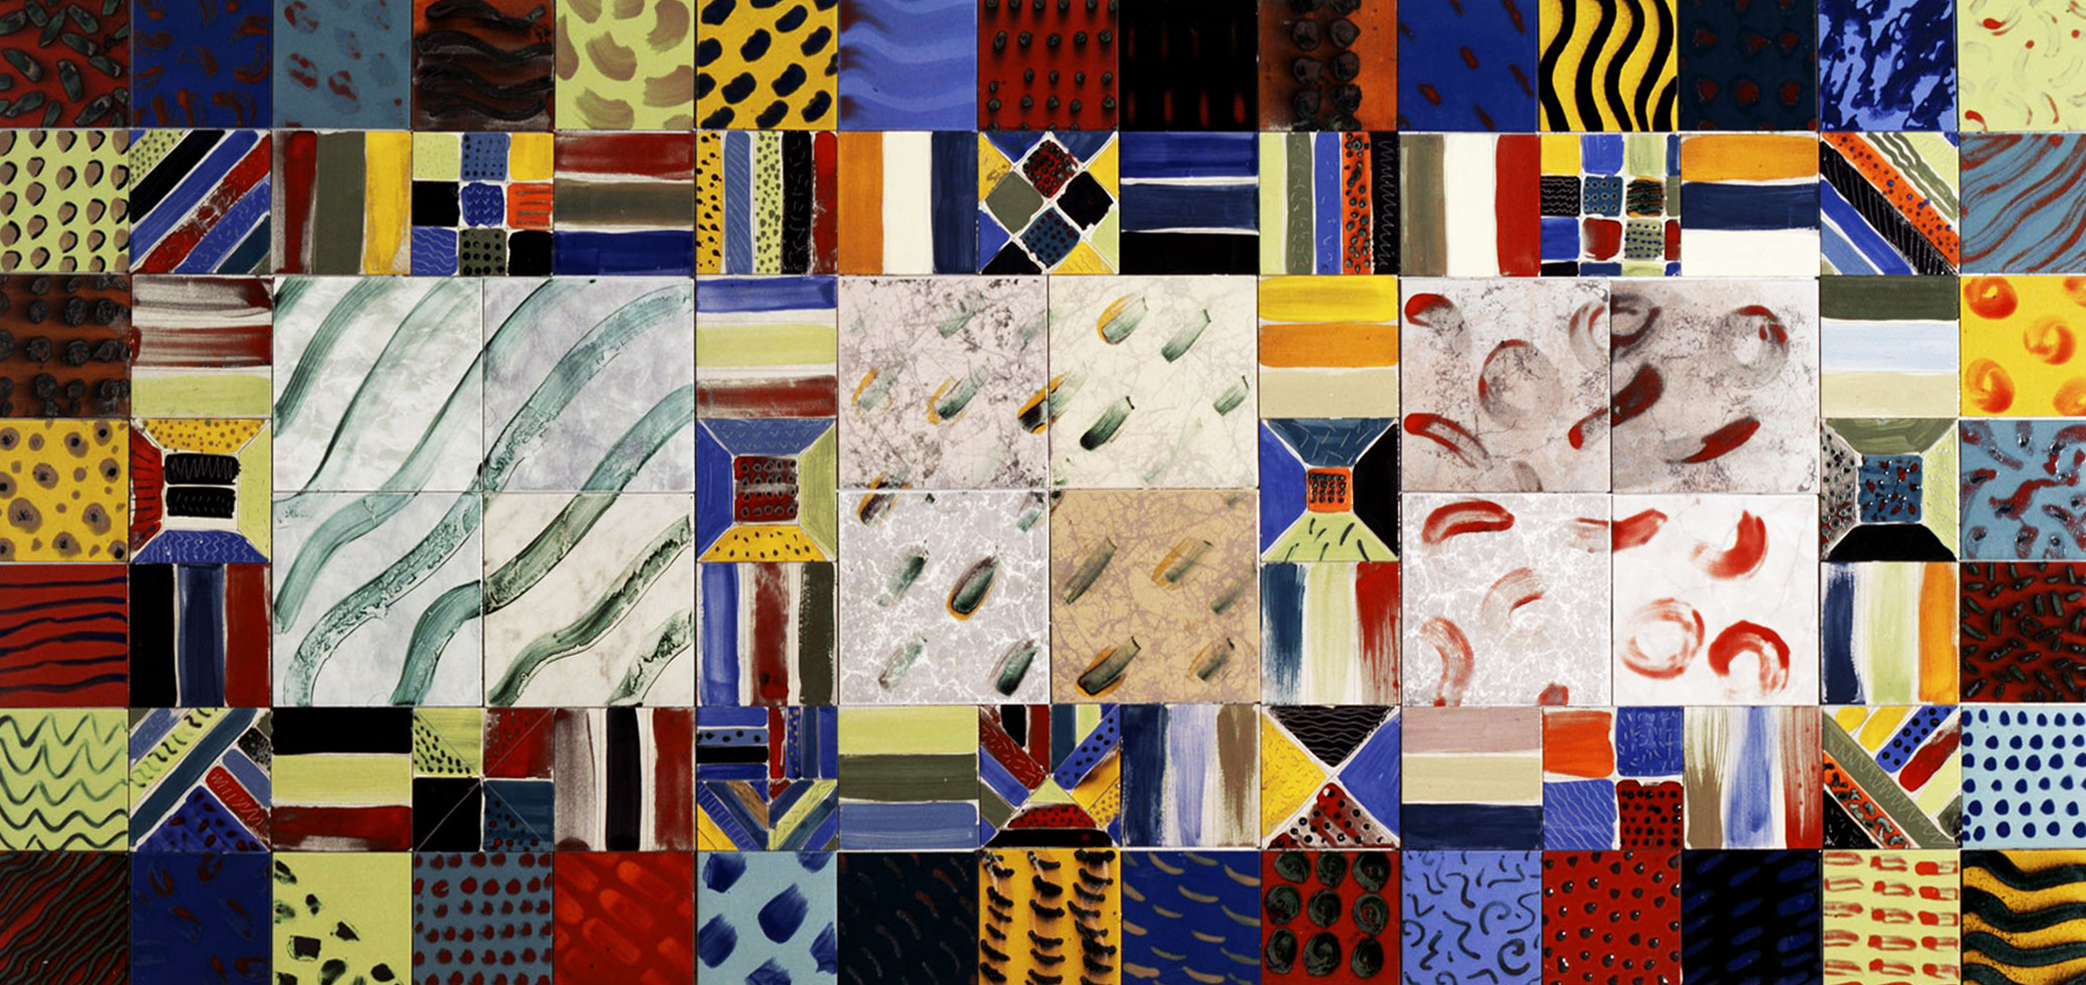 NEGEV SADOT 1993 City Hall/Municipal Building, Beer Sheva, Israel Glazed and ceramic tiles 56 x 120 inches